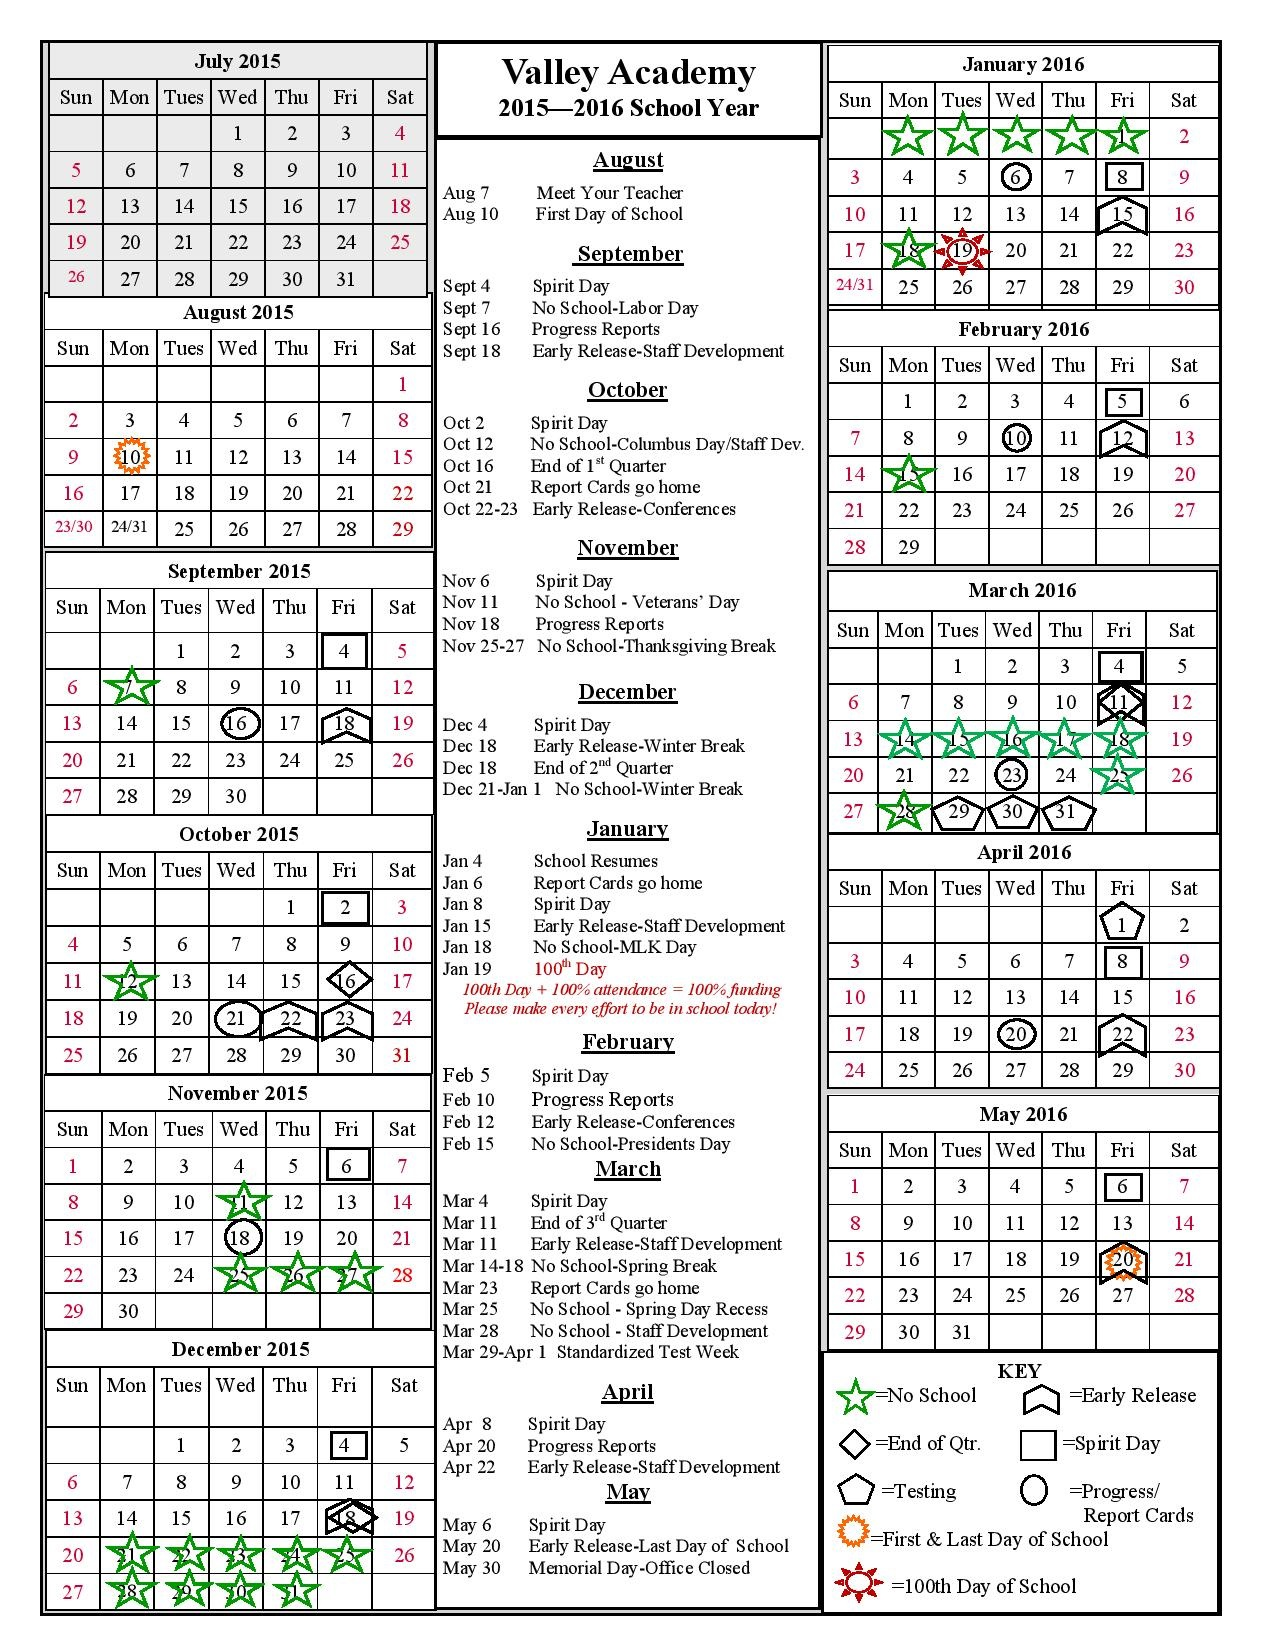 Valley Academy 2015-16 School Year Calendar